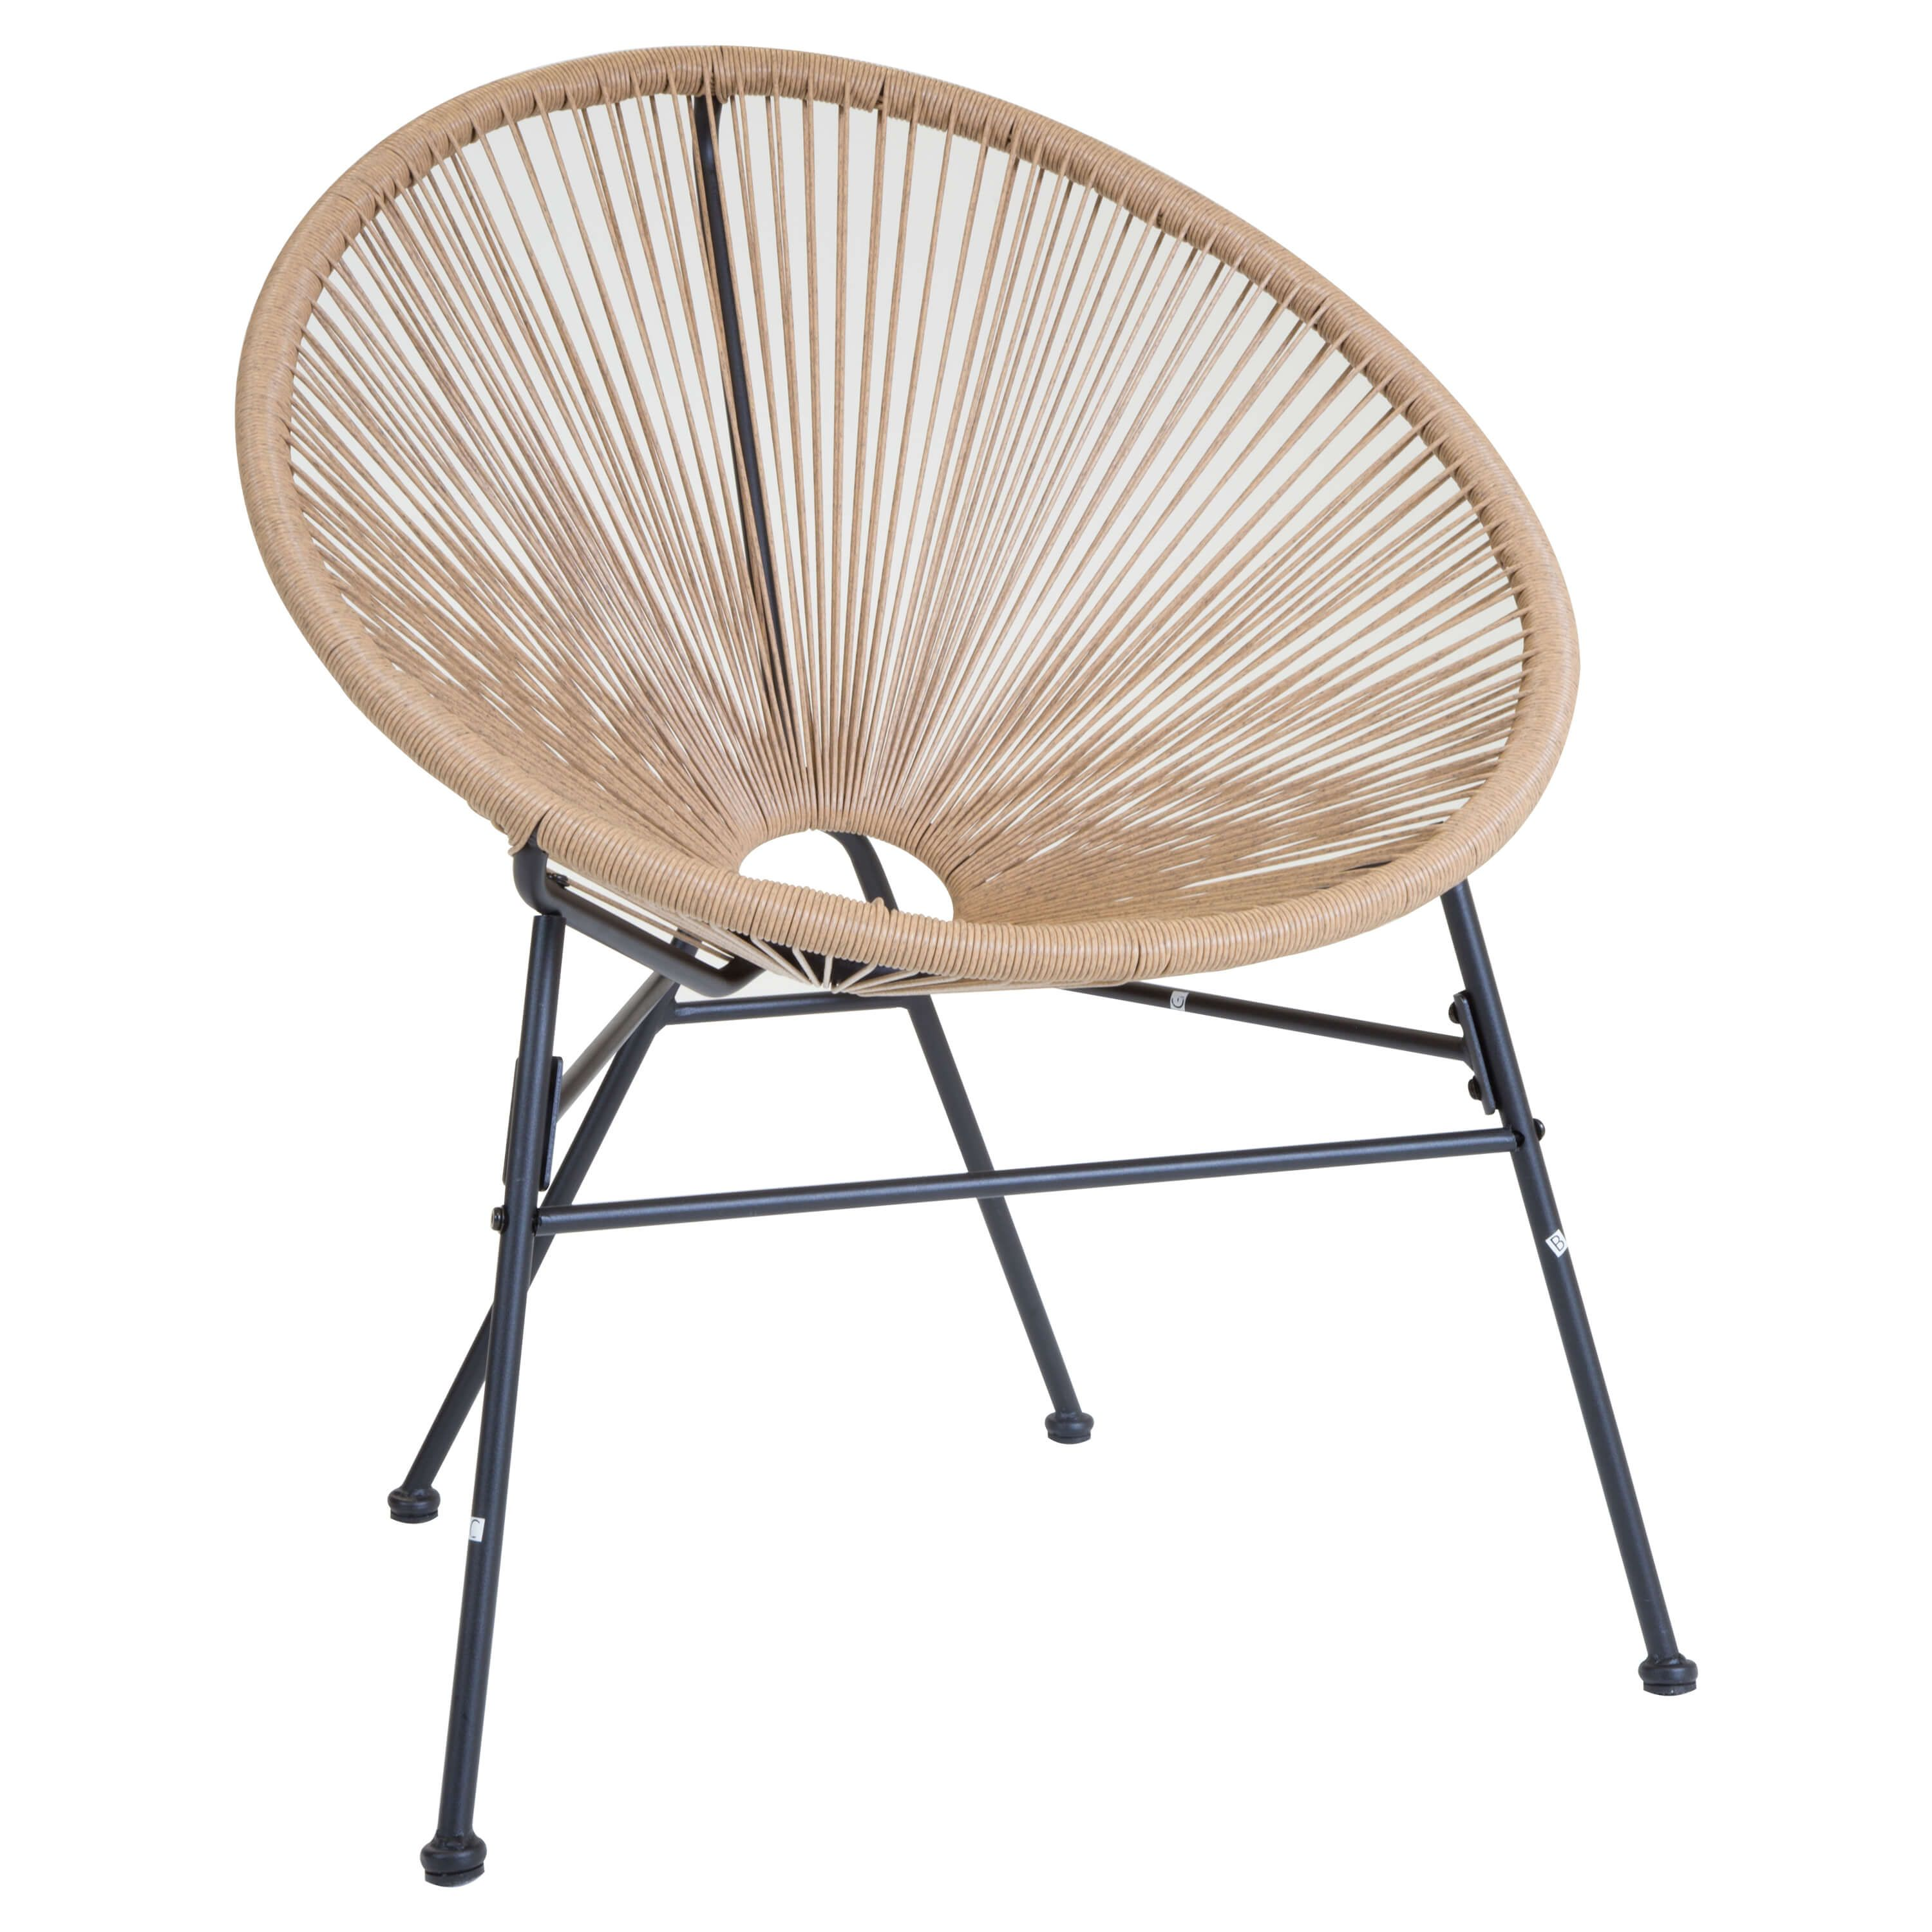 These Funky Round Retro Lounge Chairs Provide Comfort When Lounging In The  Garden. Made From